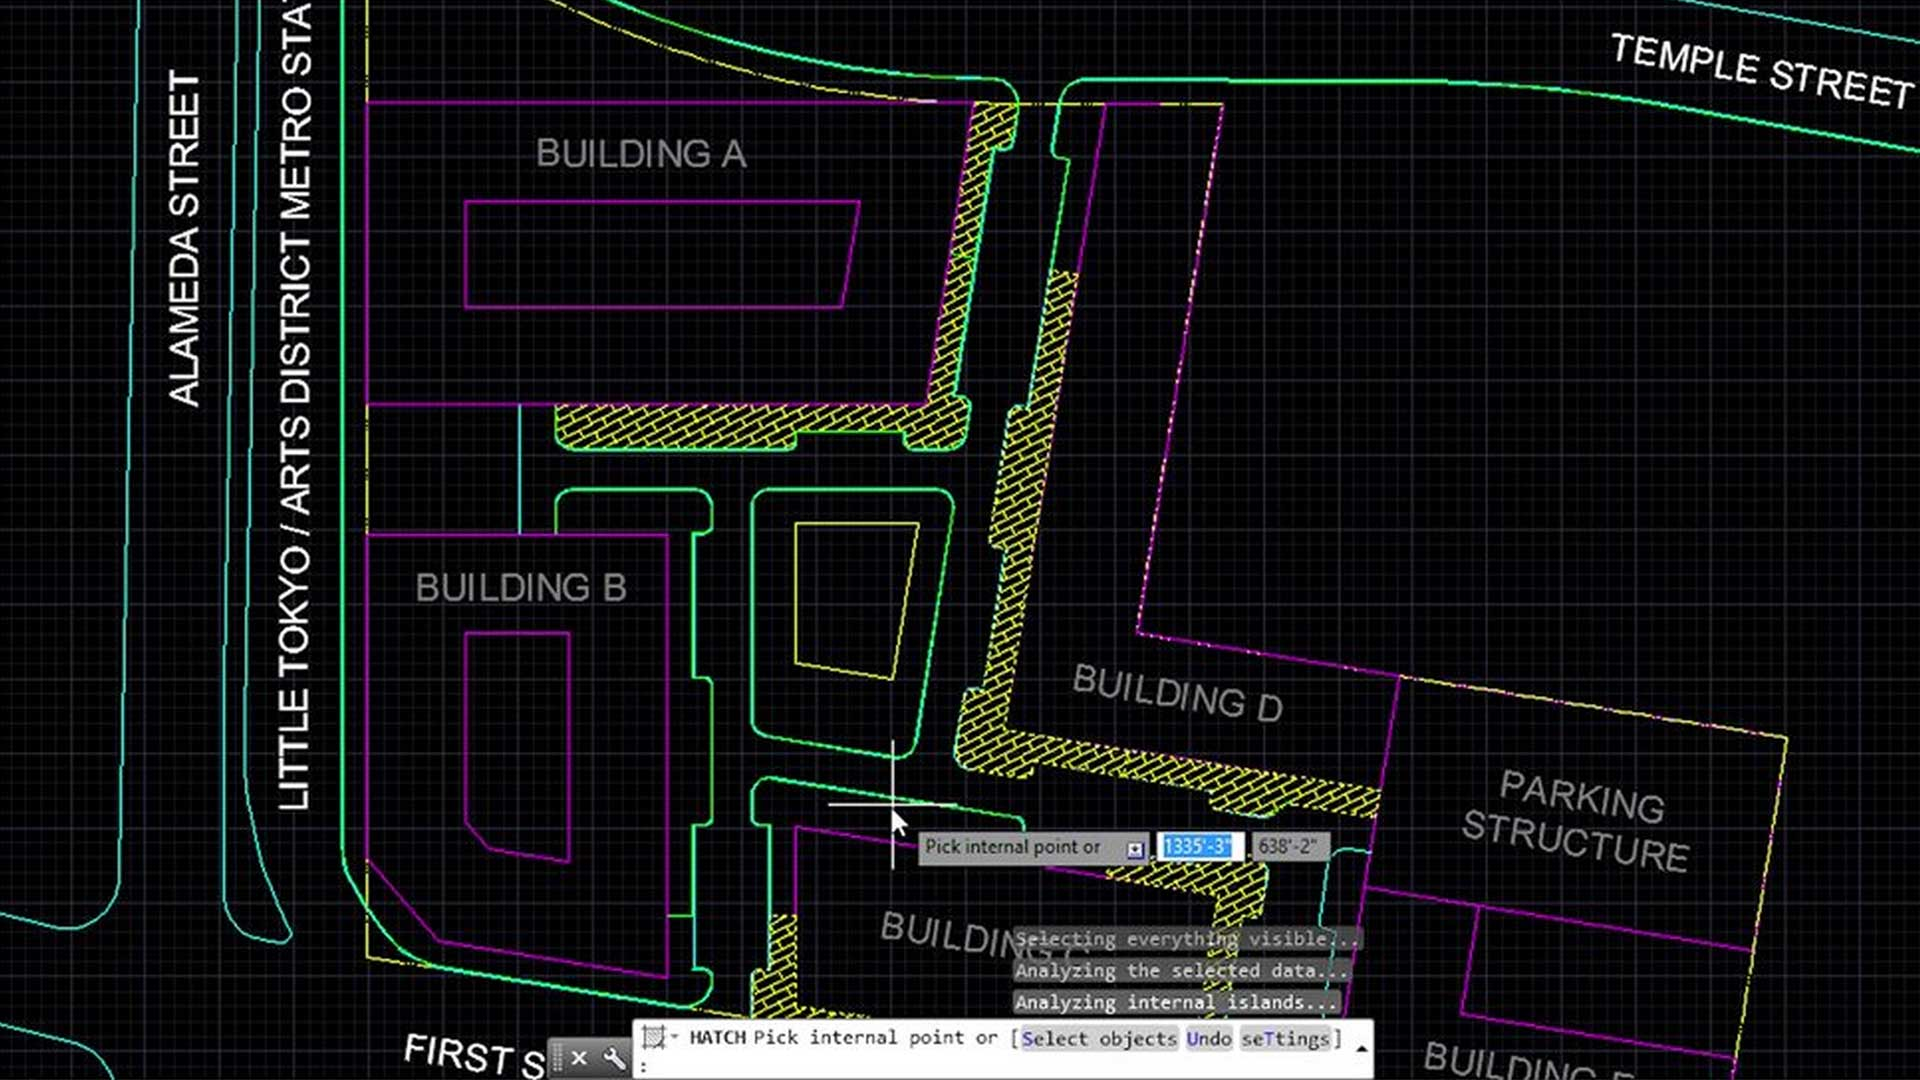 site plan created in autocad